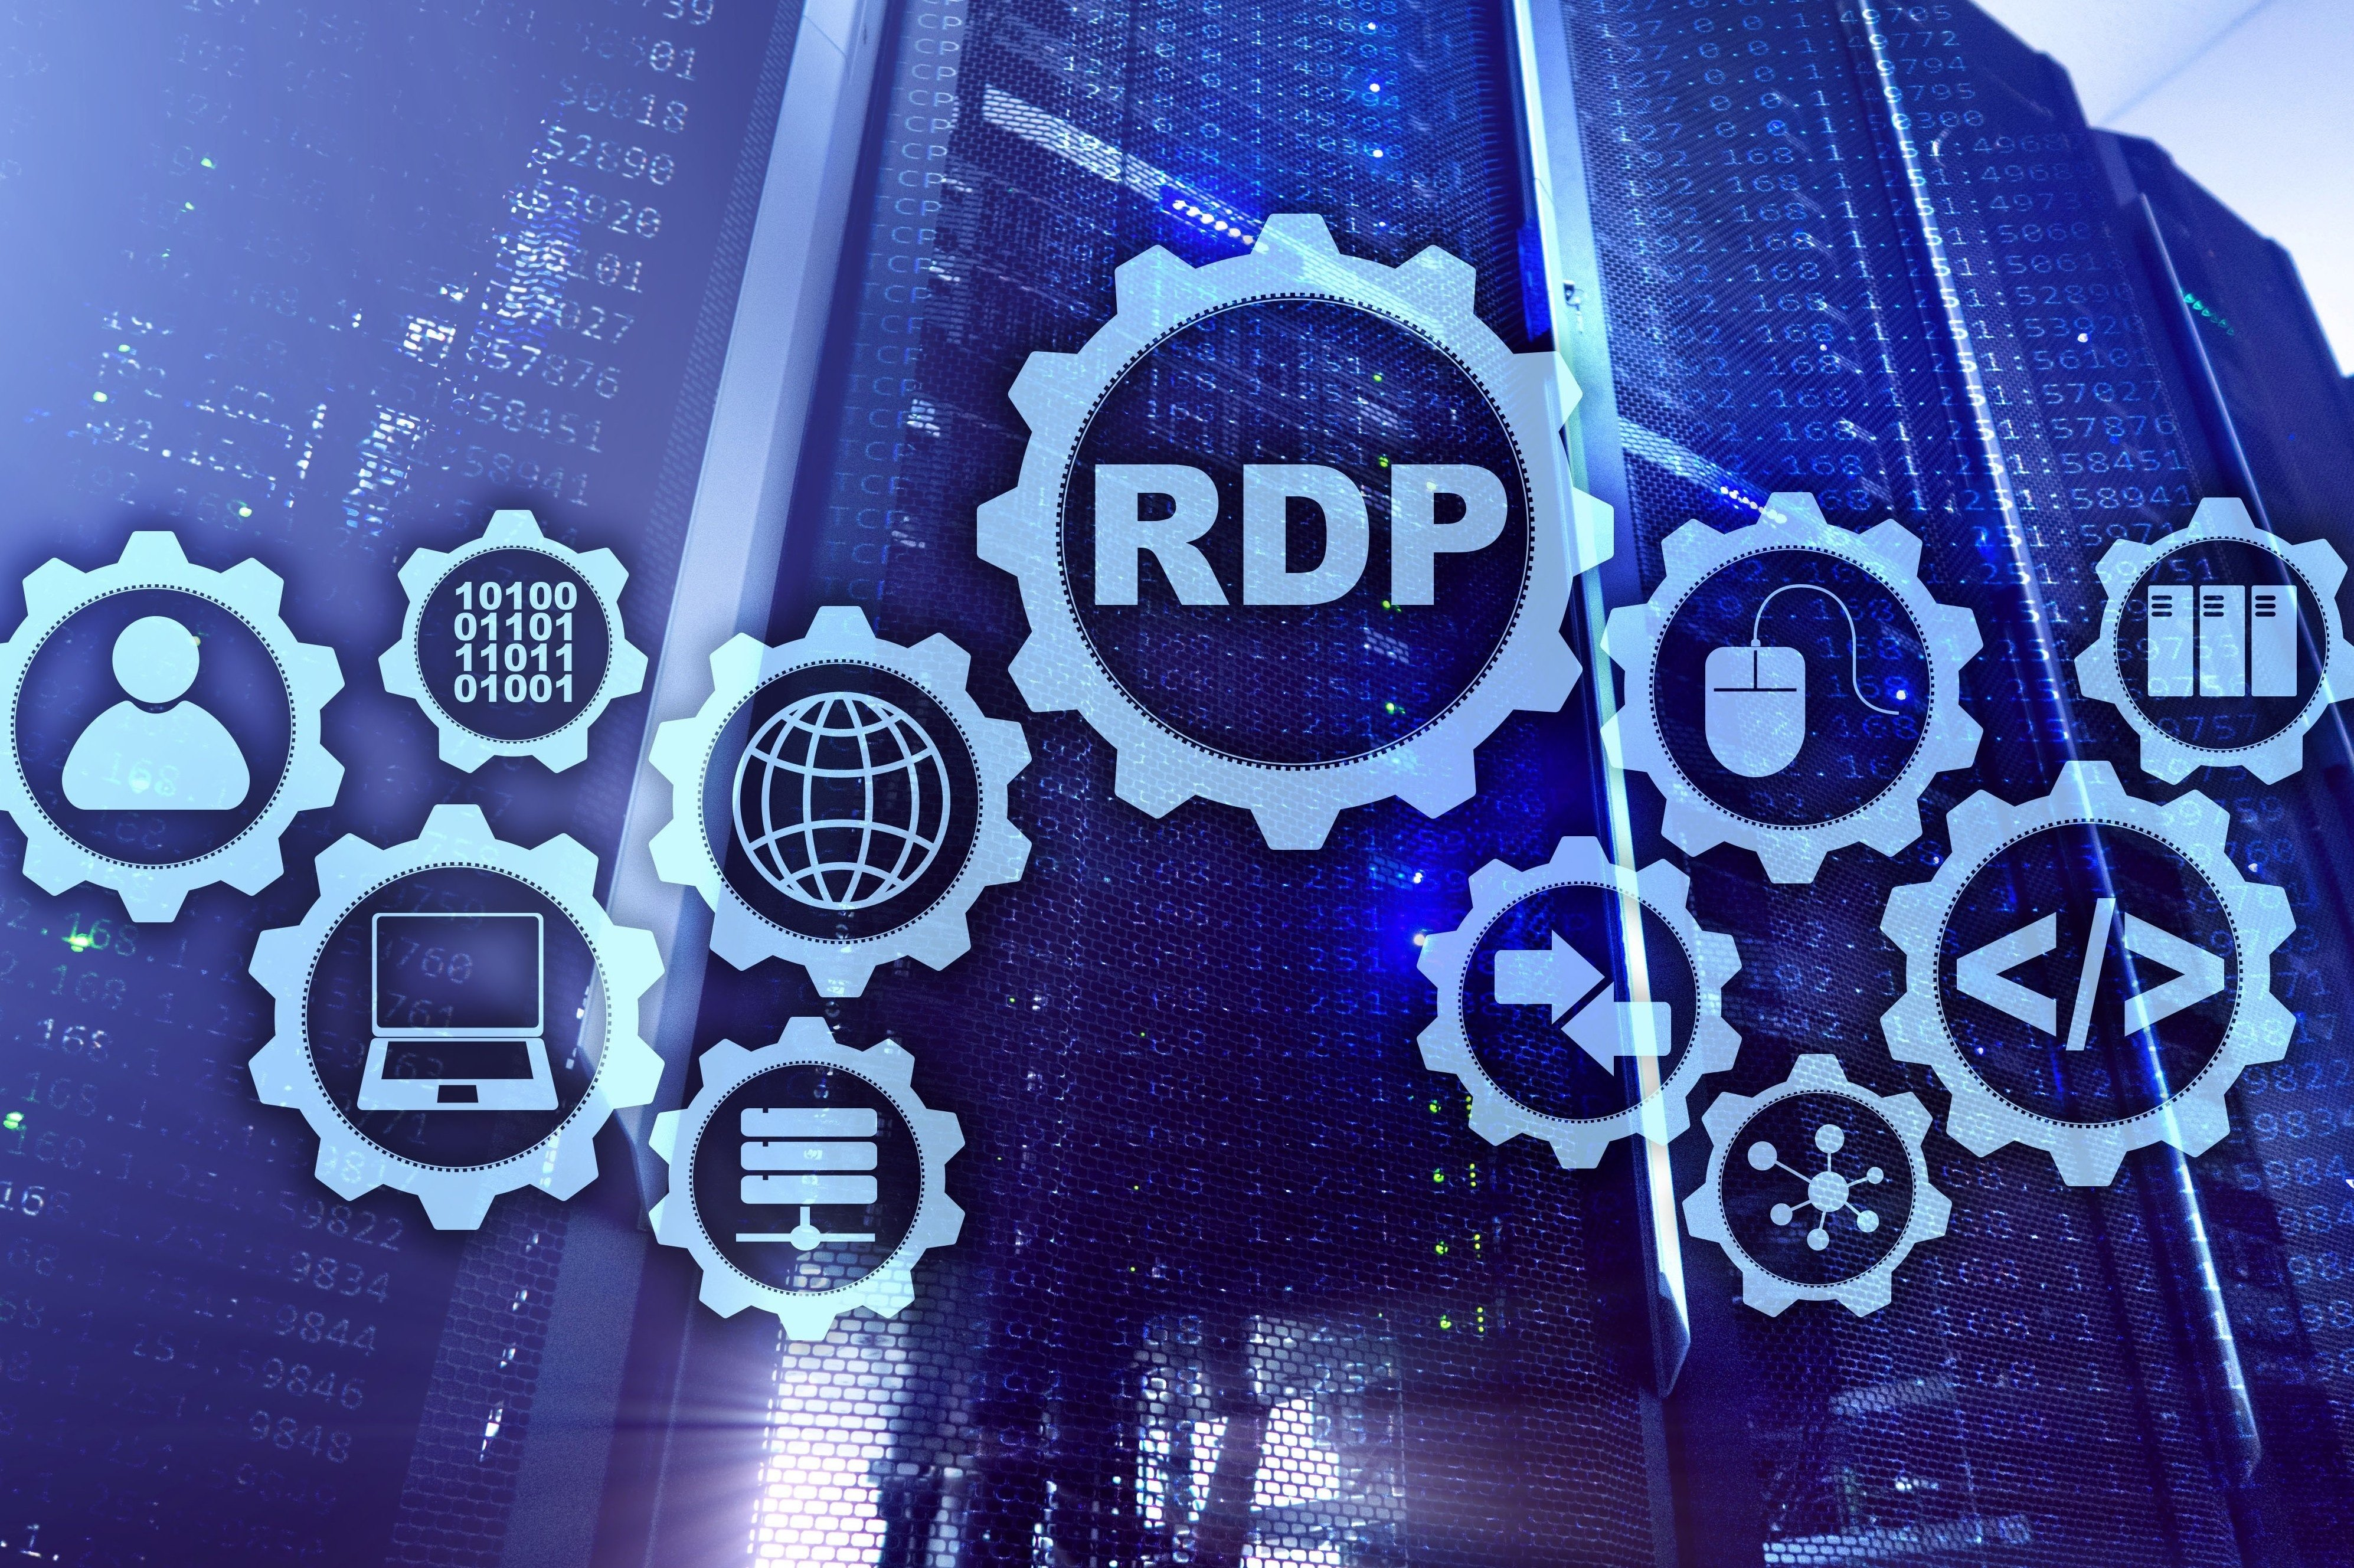 Privileged Access Management and Remote Desktop Protocol (RDP)